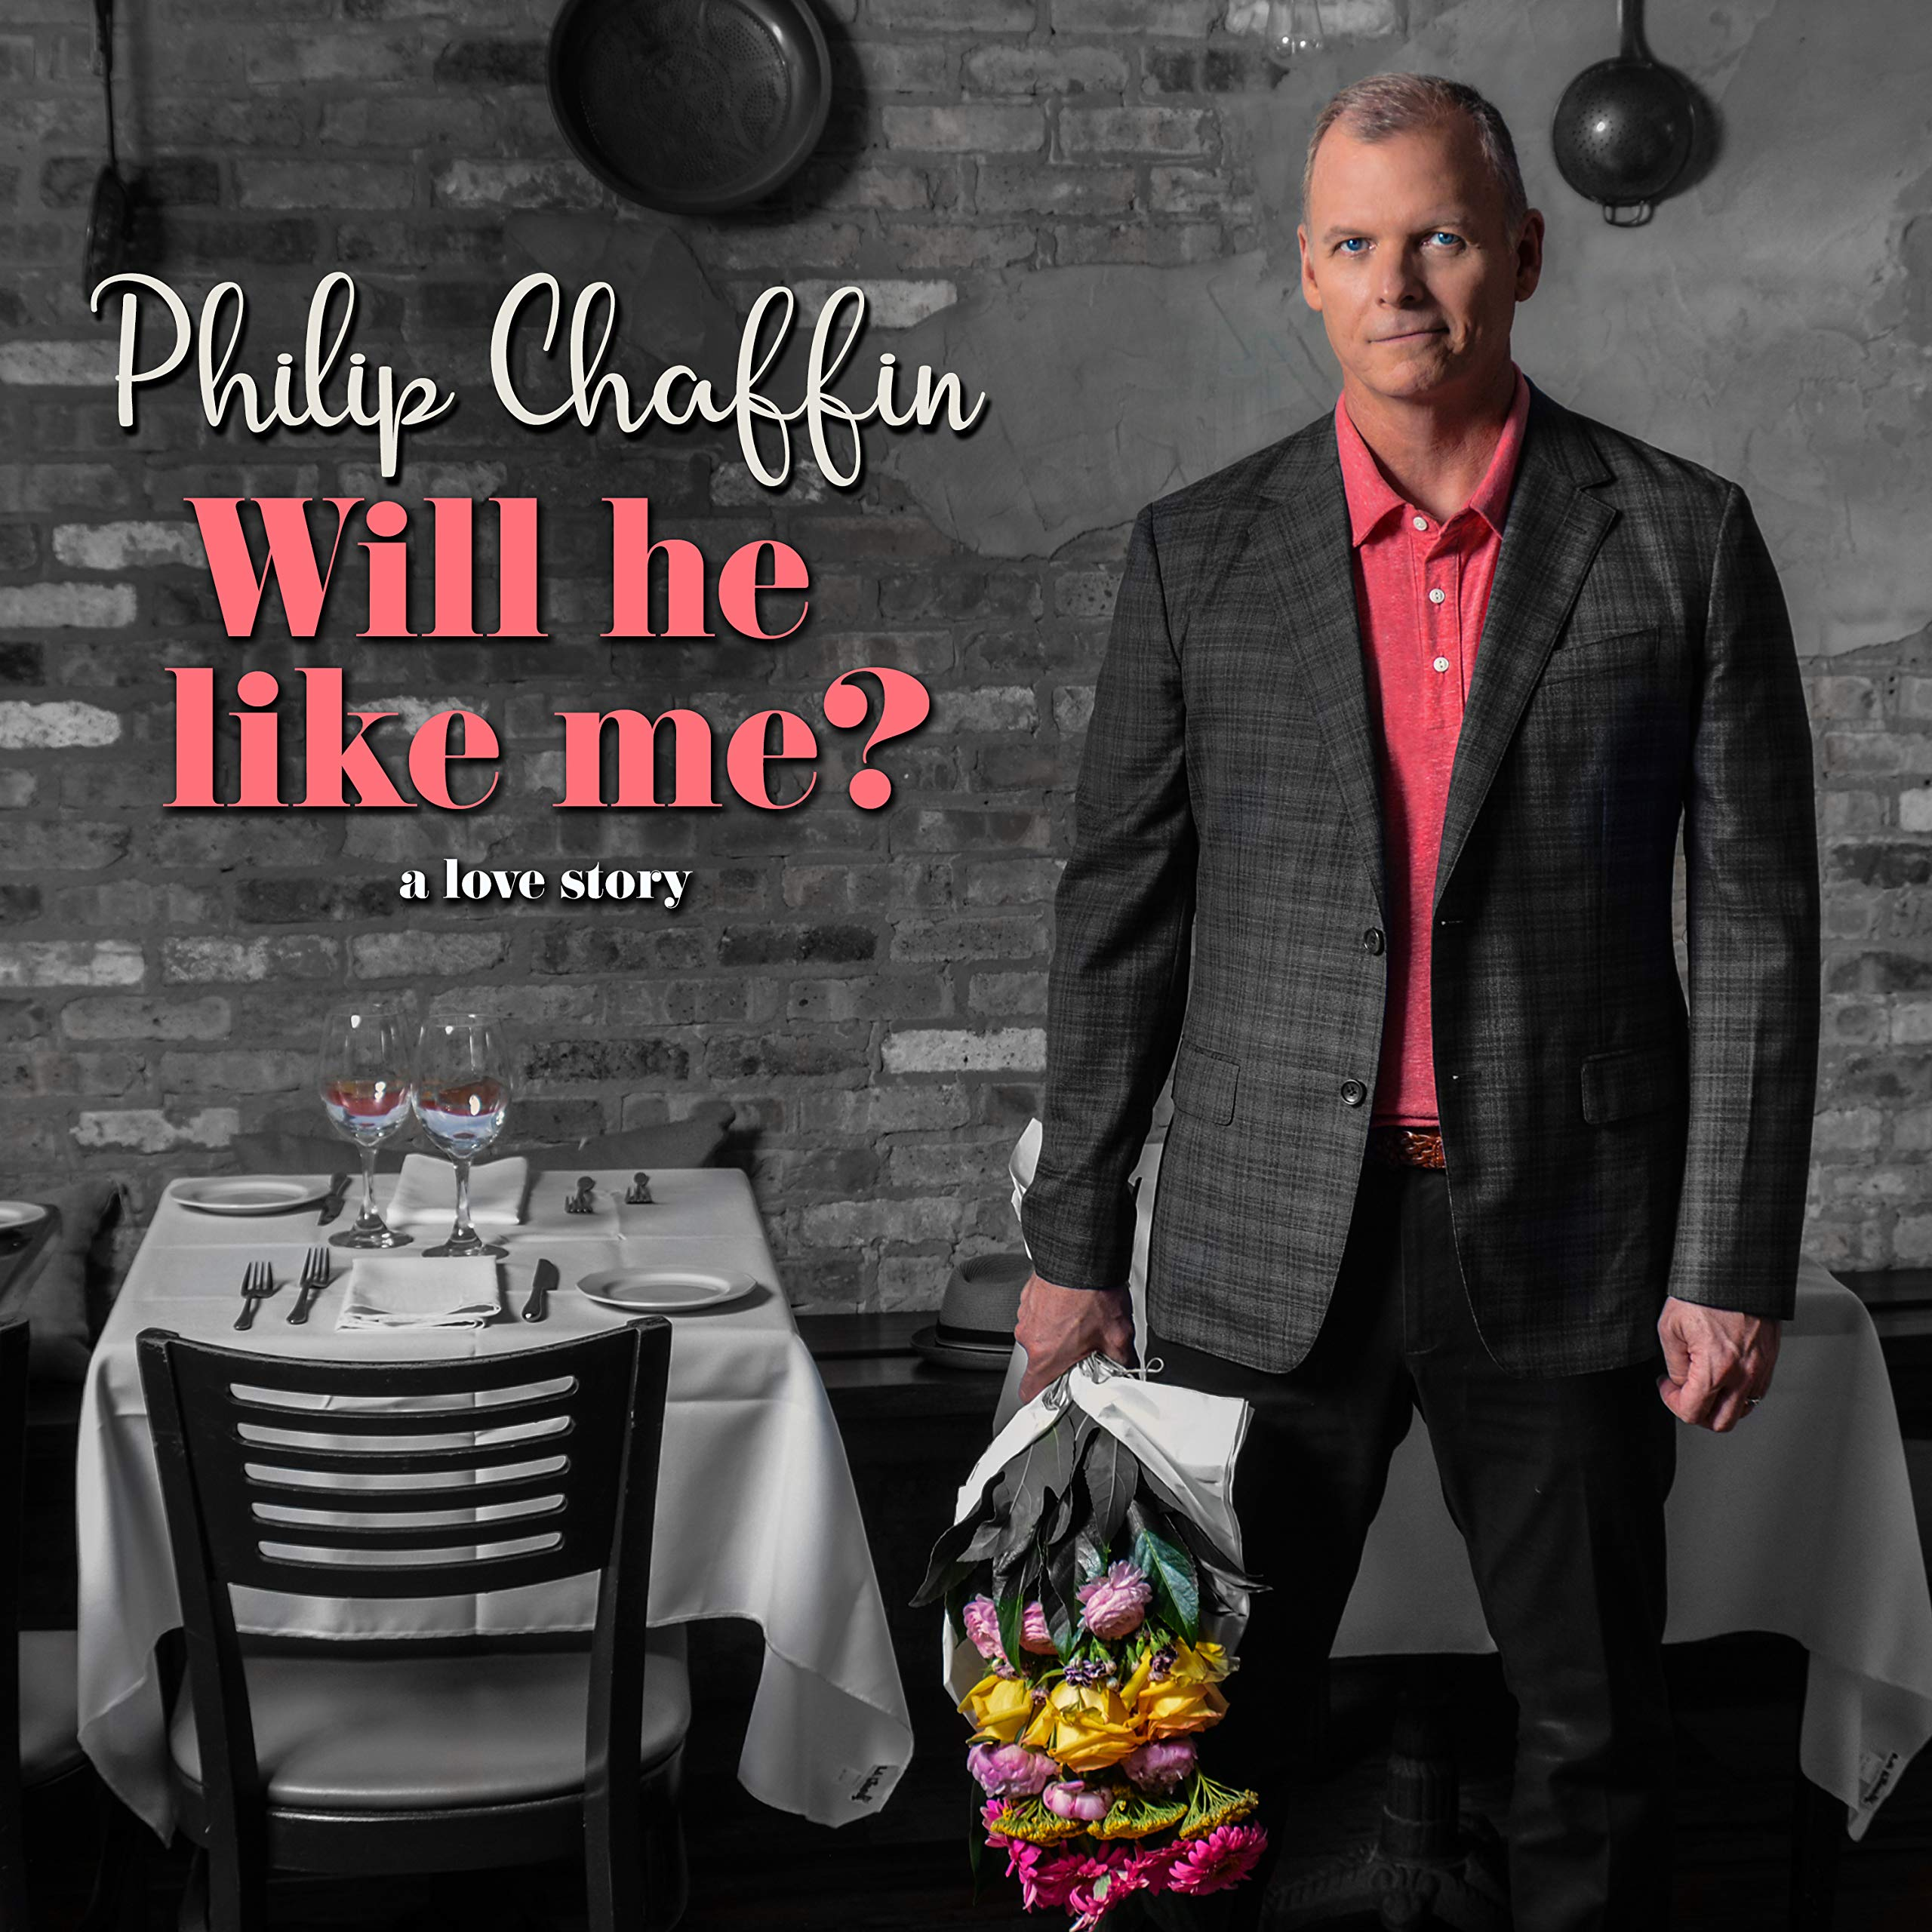 CD : Philip Chaffin - Will He Like Me? (CD)